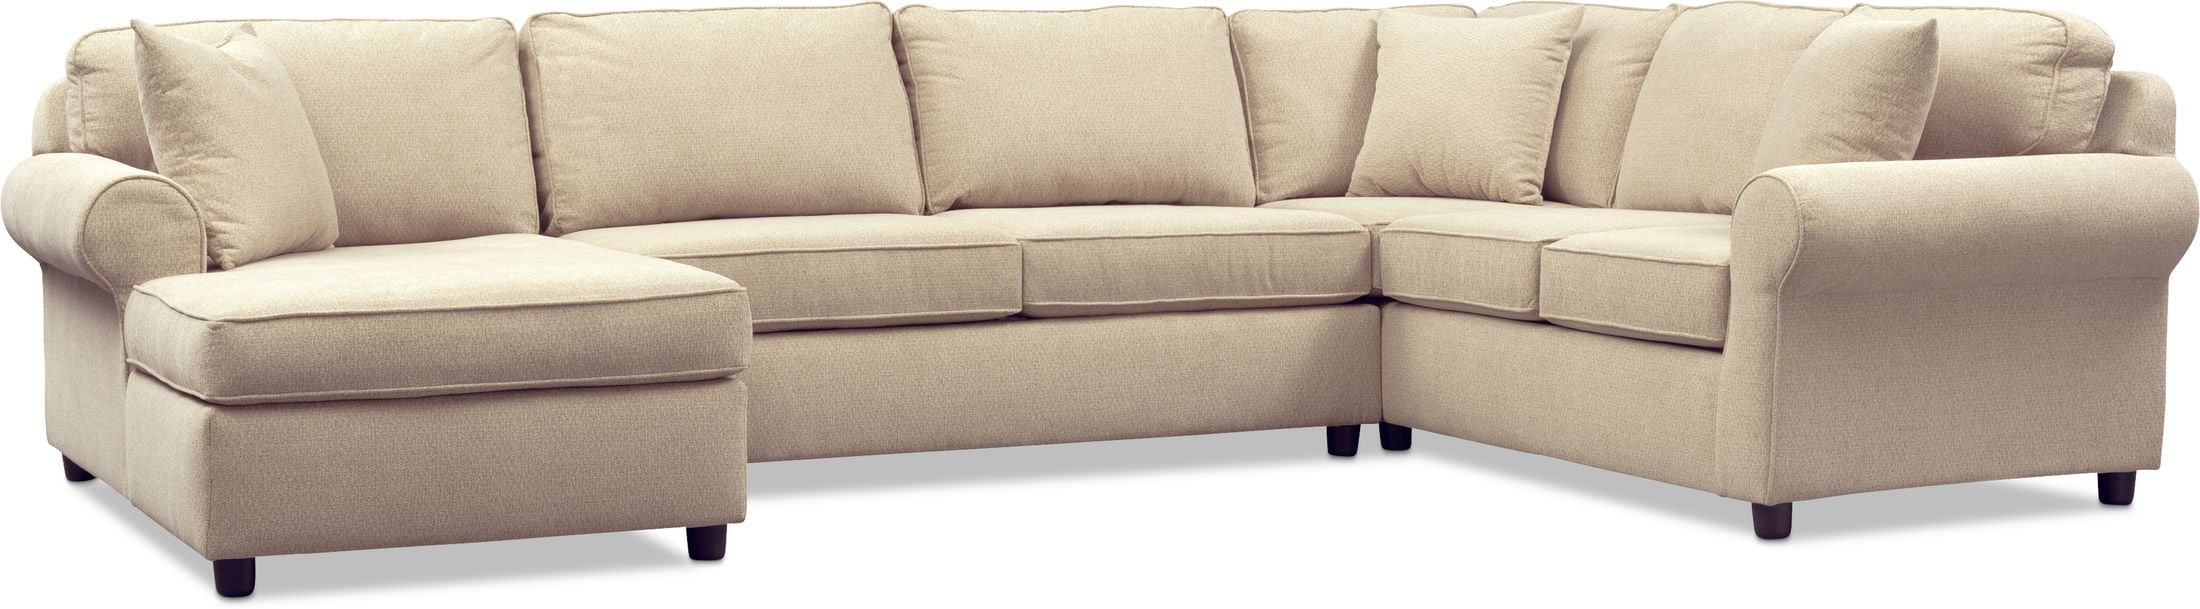 Living Room Furniture - Ashton 3-Piece Sectional with Chaise